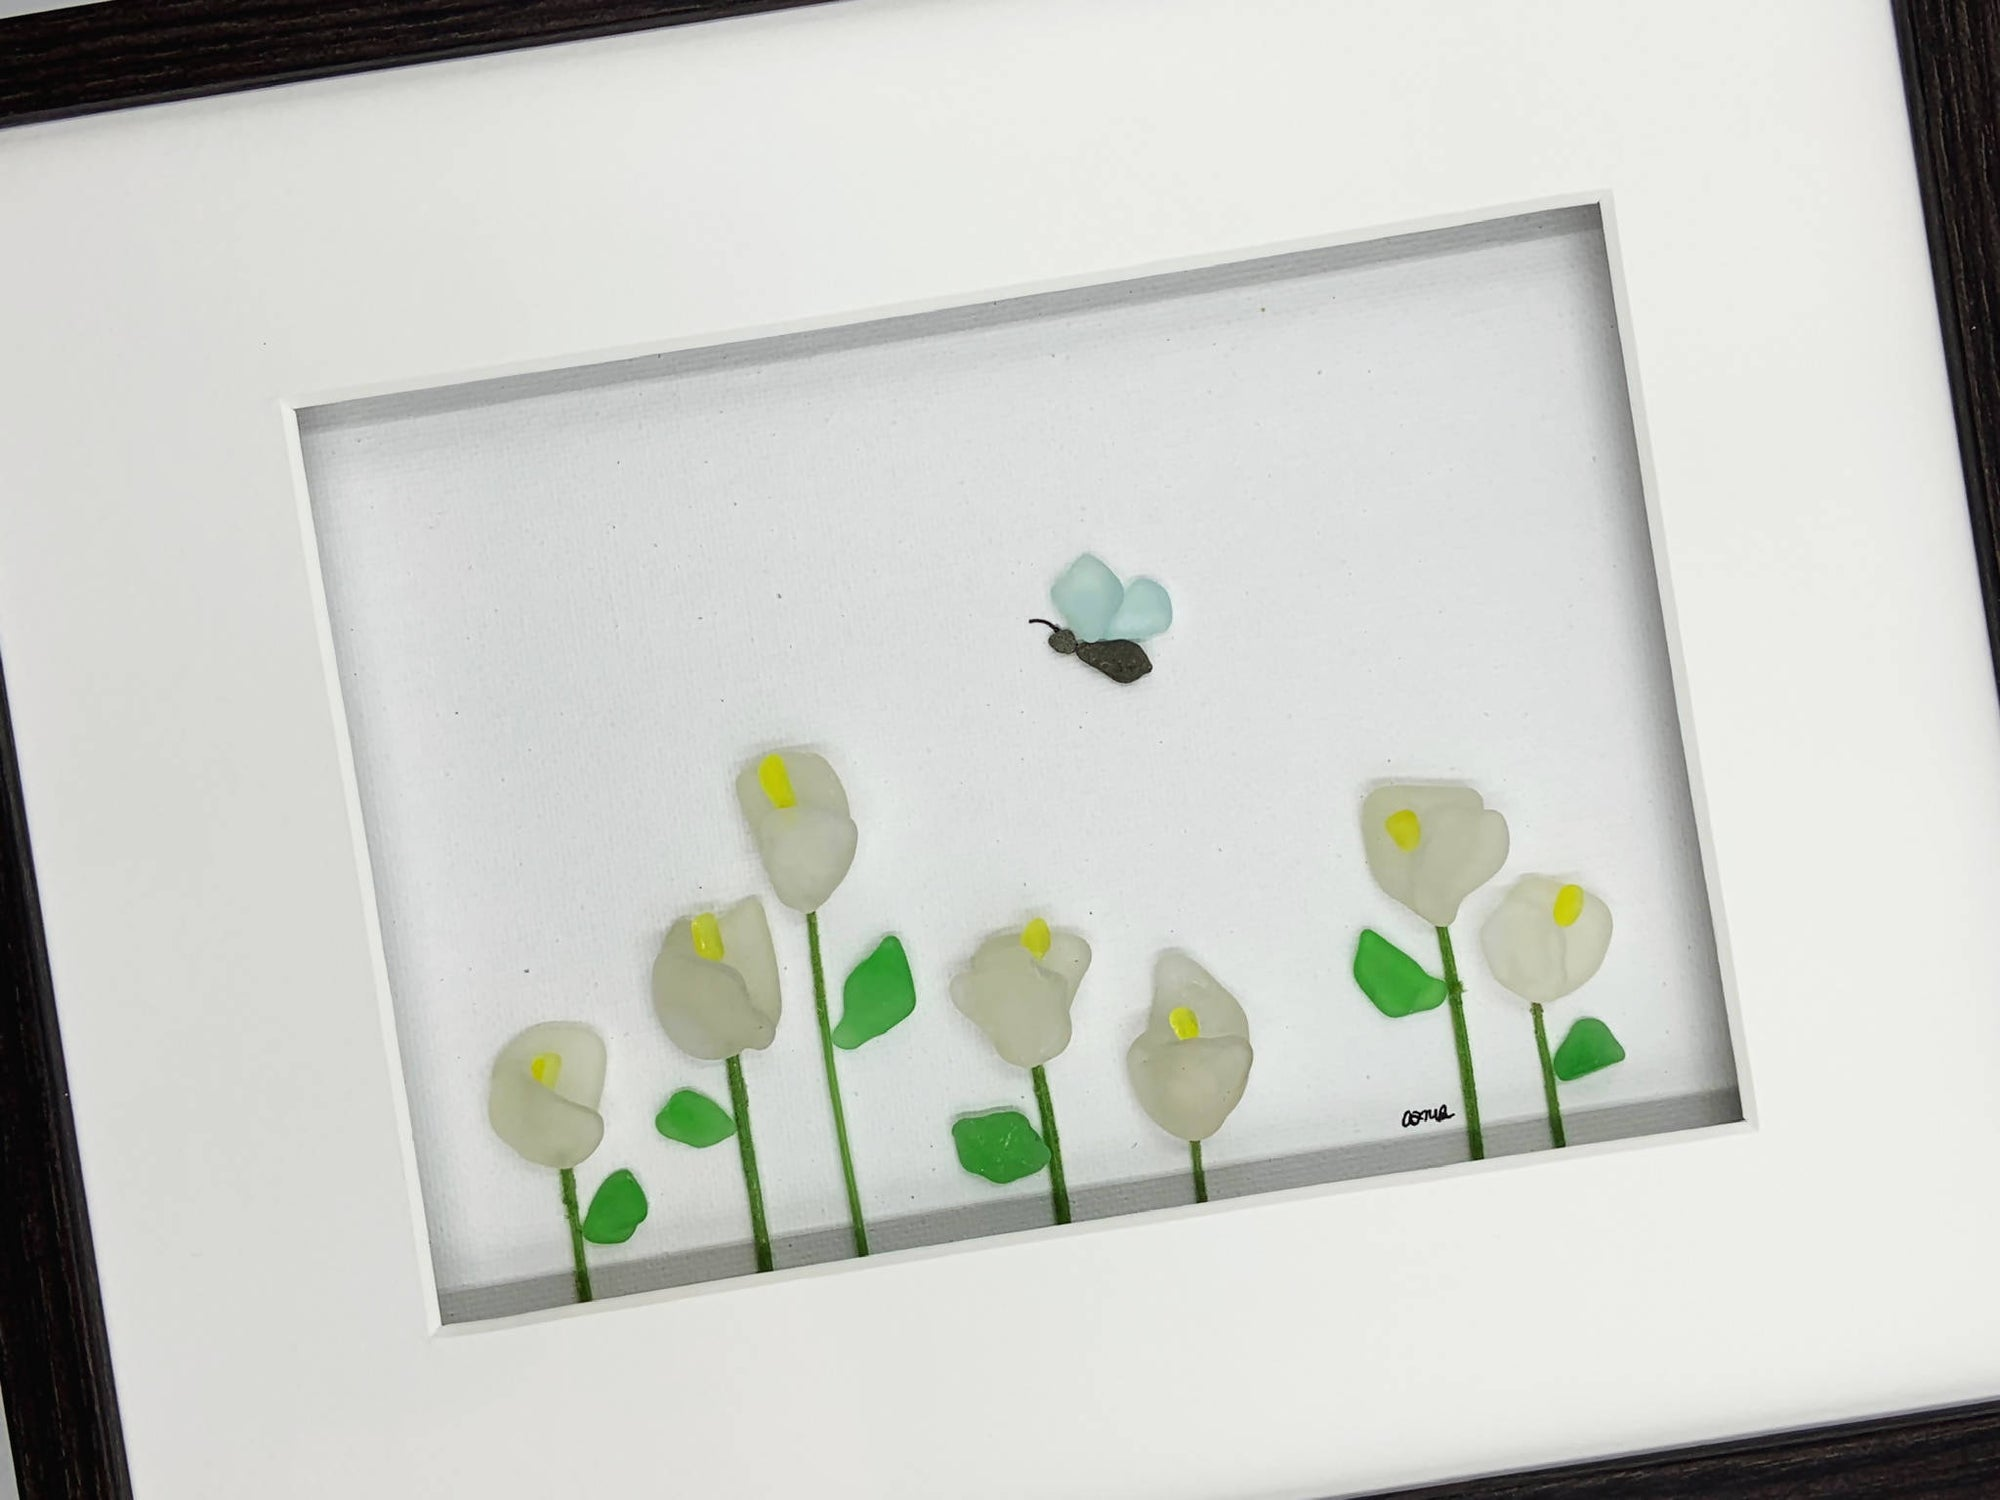 Sea glass art / pebble art, 10 by 8, Calla Lilies